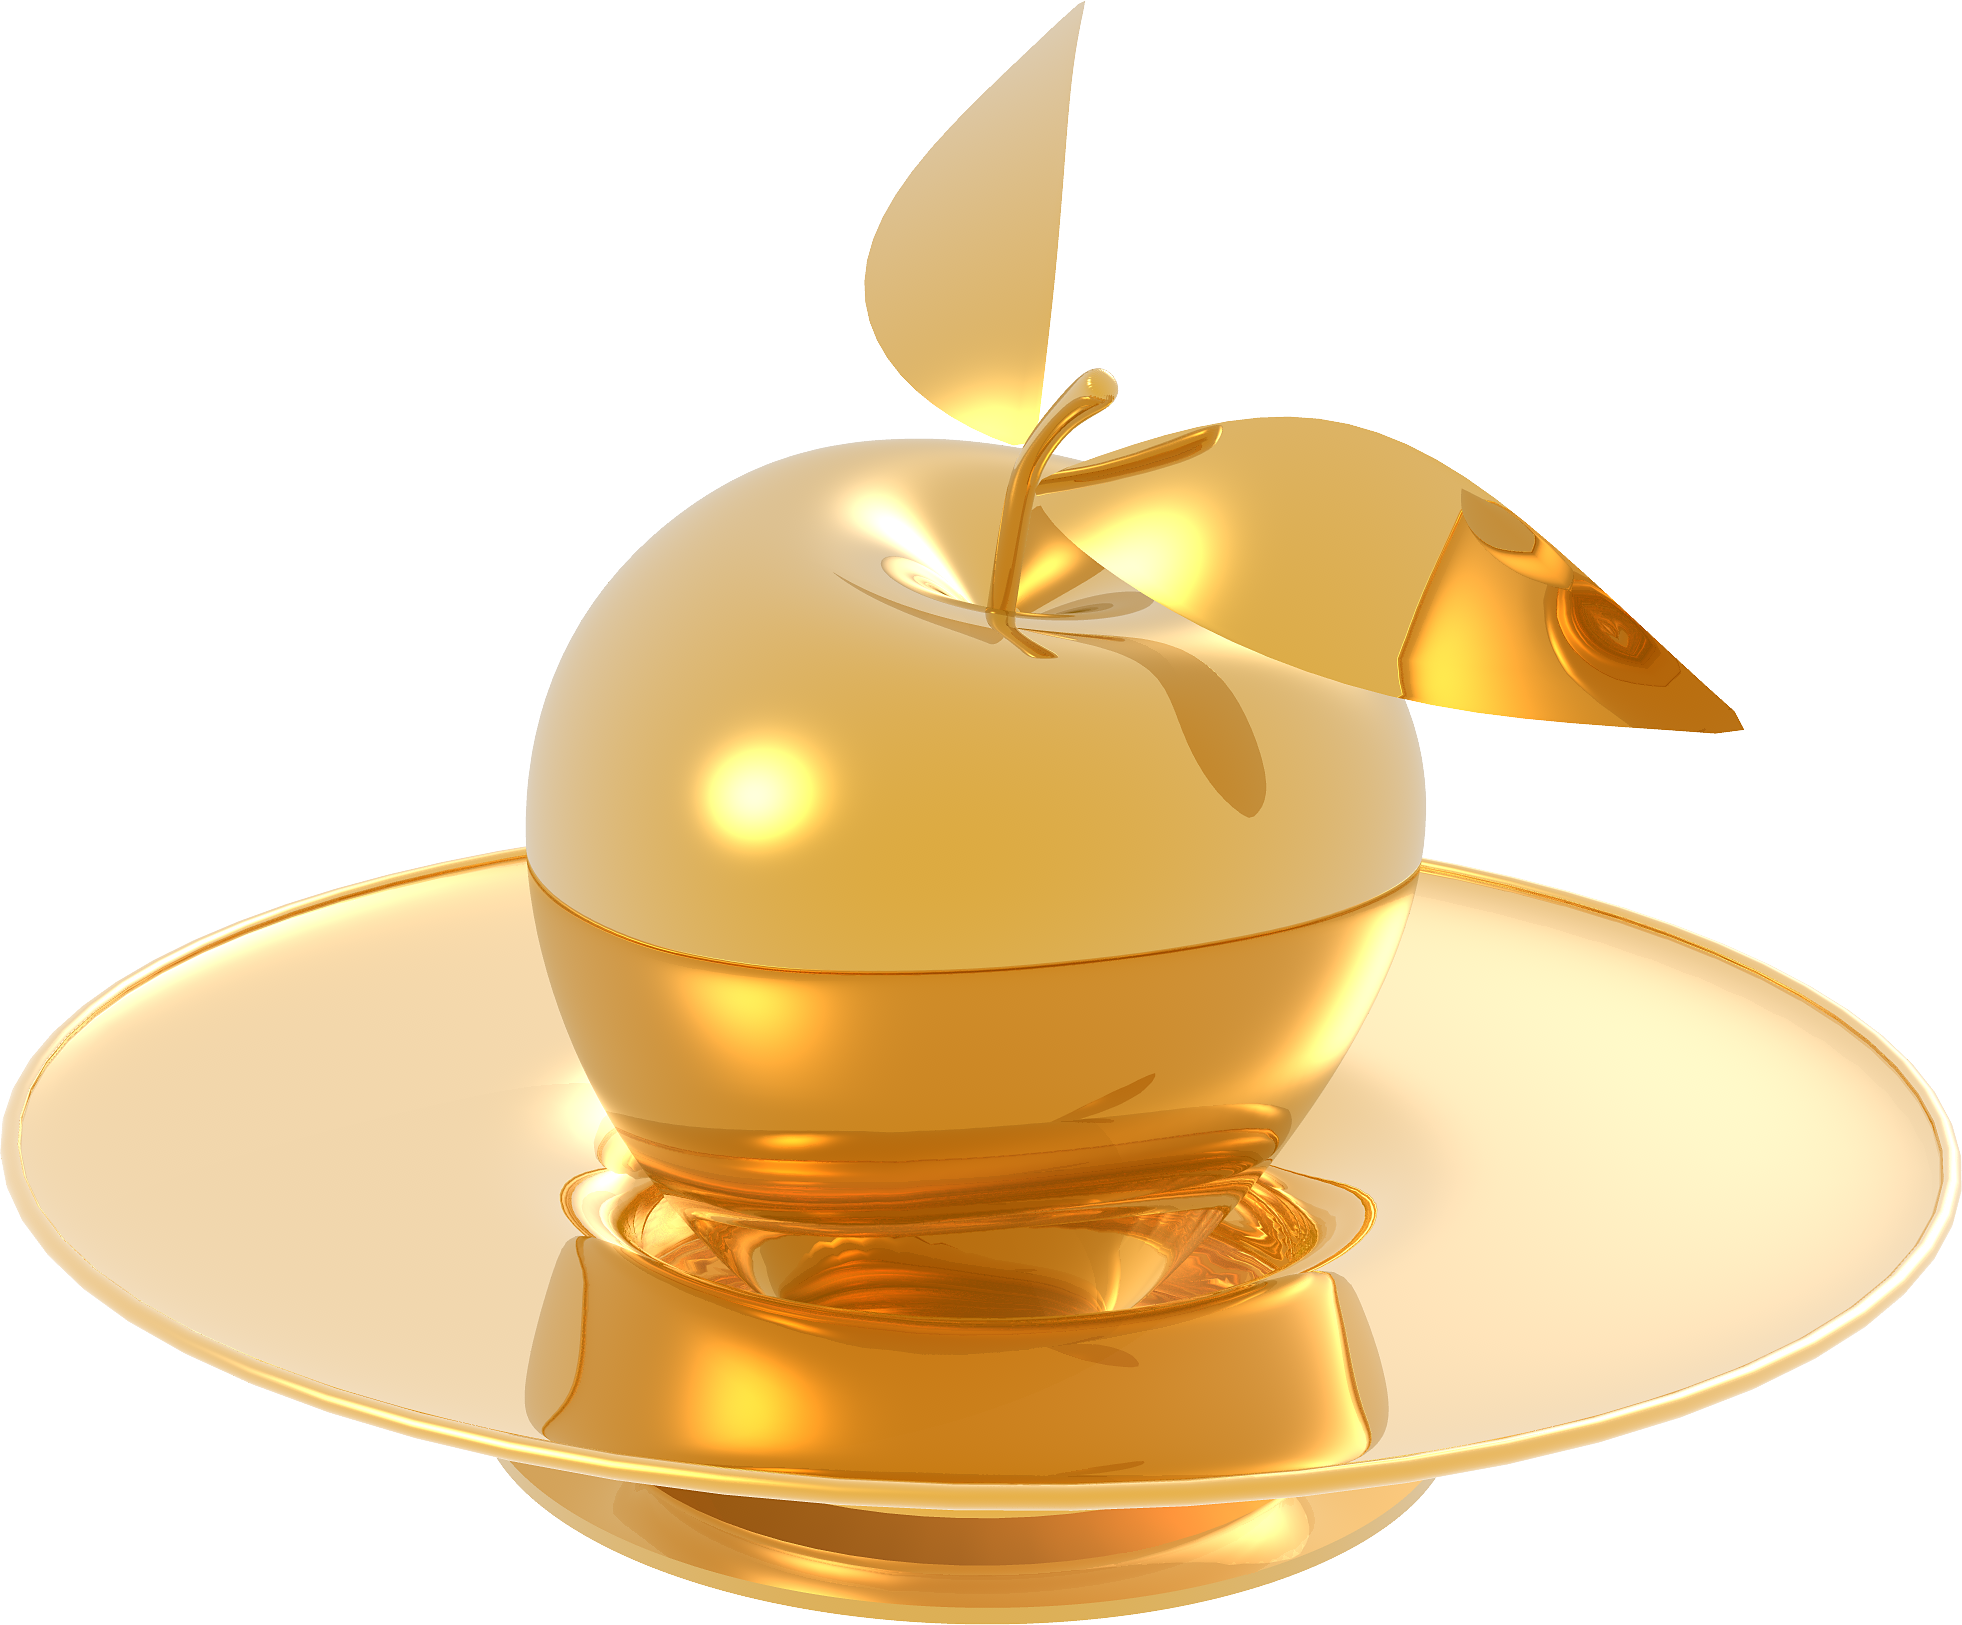 Gold Made Apple and Plate